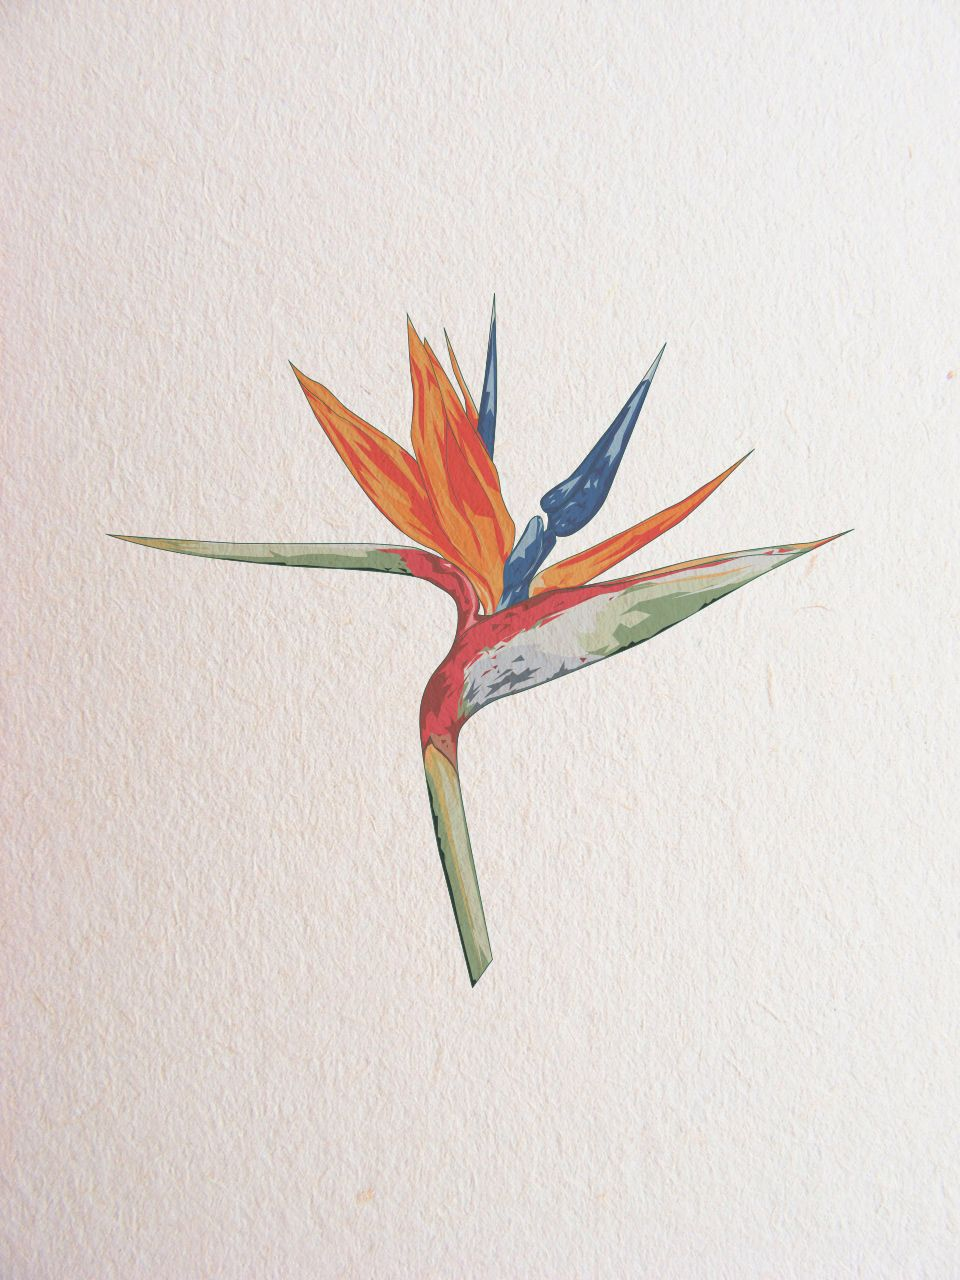 Bird Of Paradise Flower Watercolor Flowers Paintings Bird Watercolor Paintings Flower Tattoos